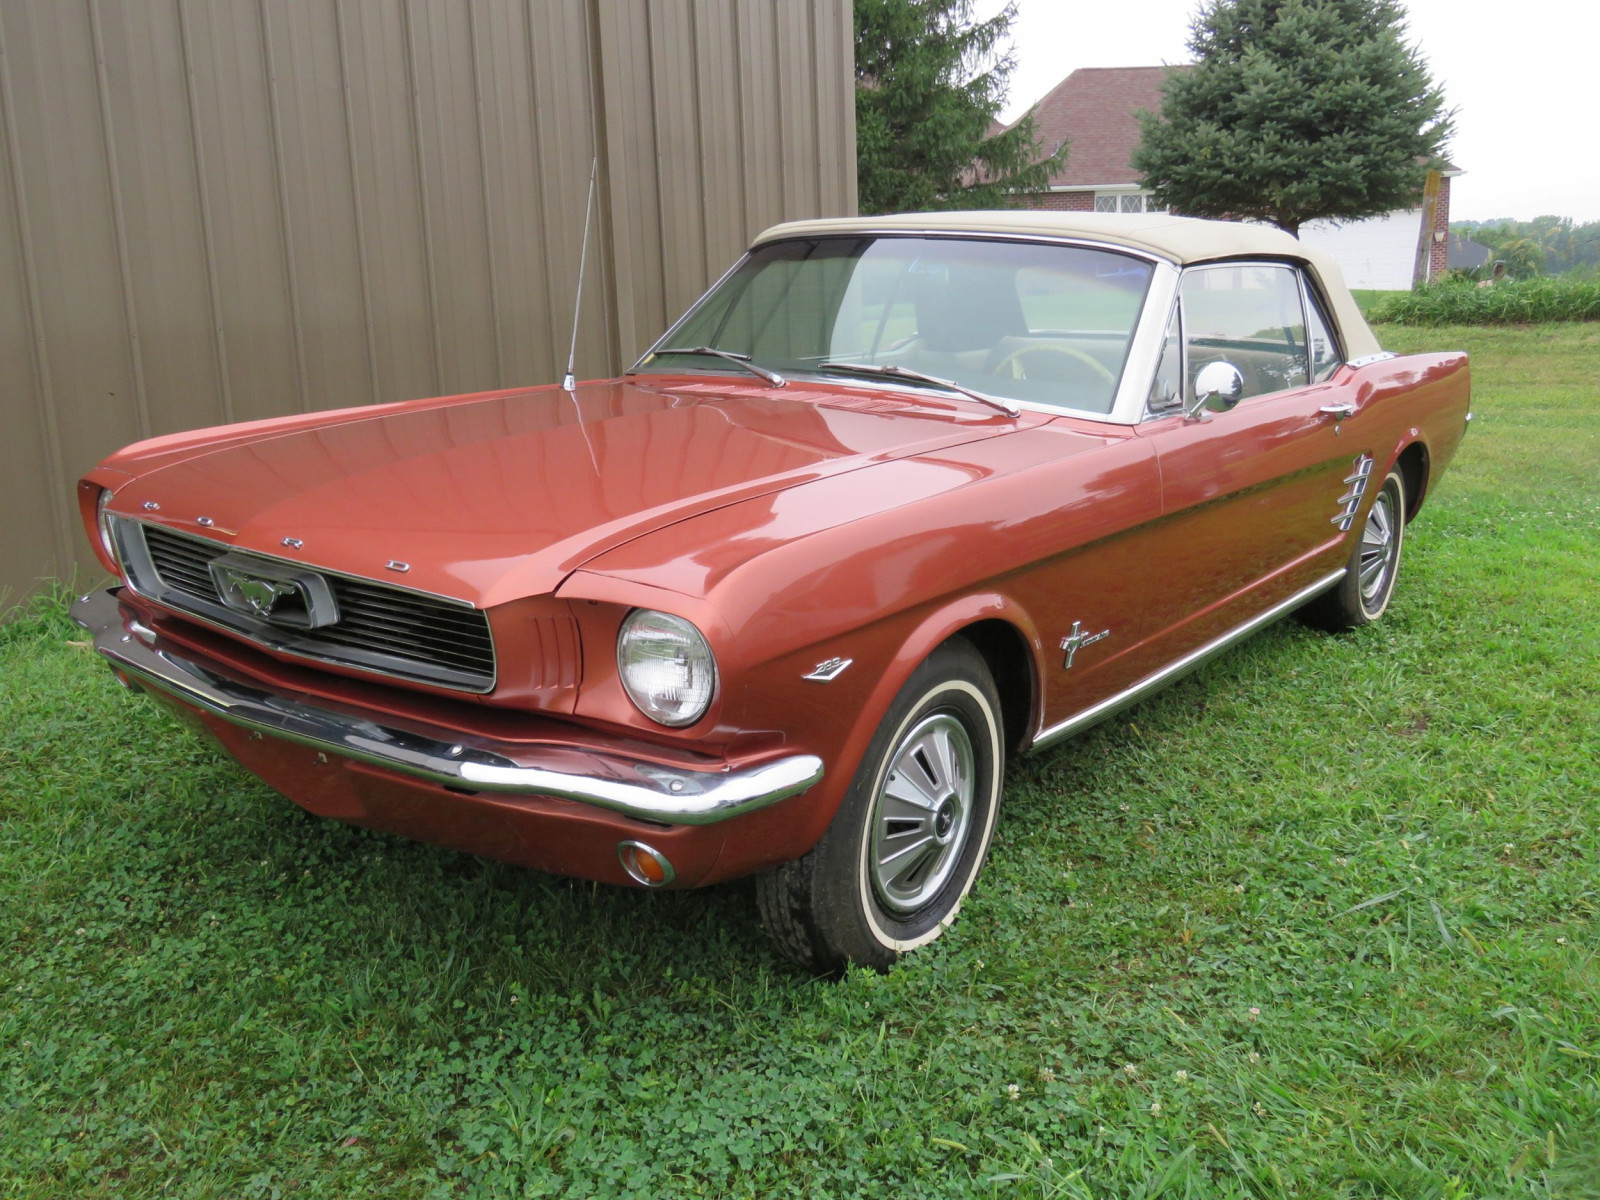 1966 Ford Mustang Convertible - Image 1